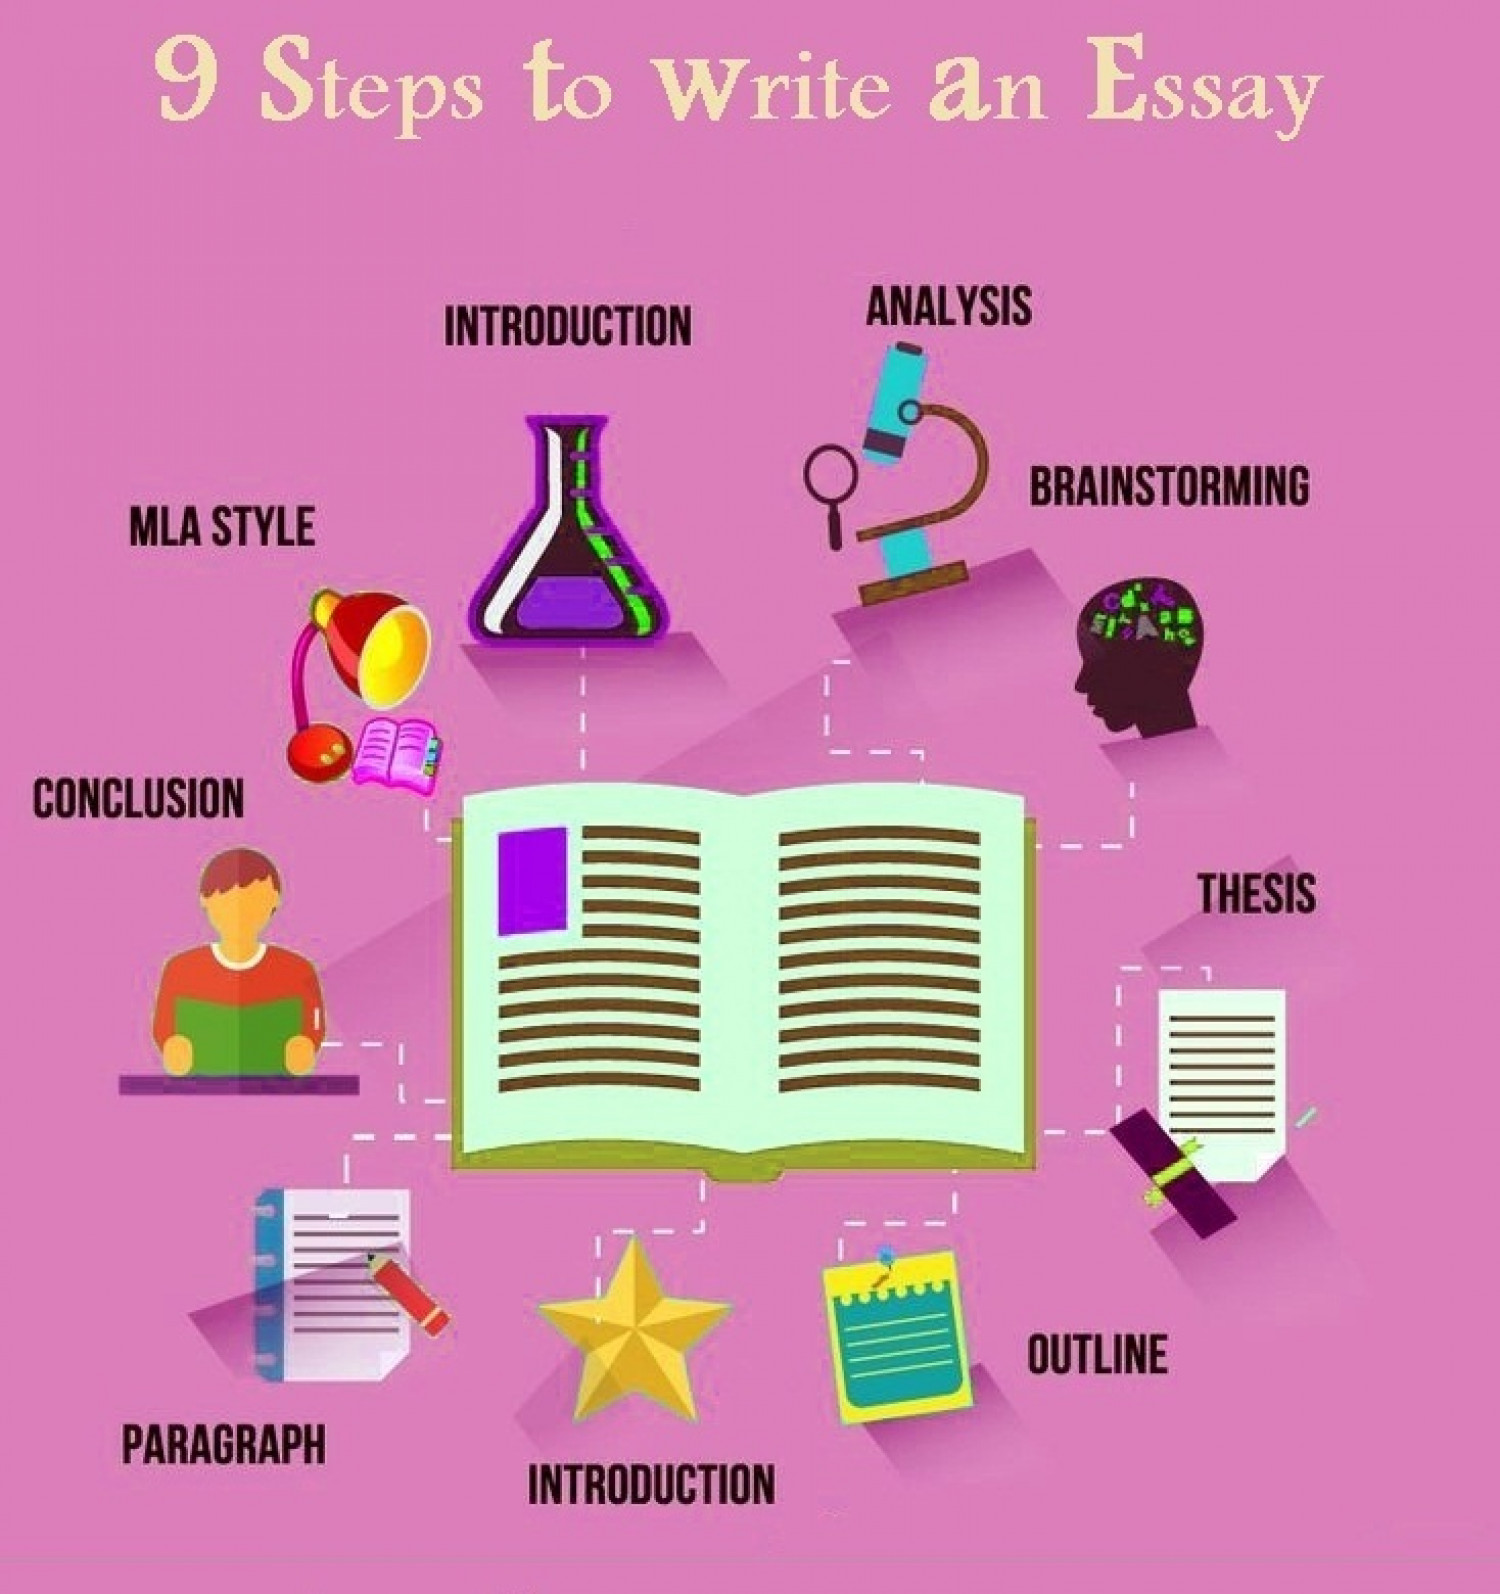 steps in writing a college application essay On this page you can find out why write a college application essay steps to writing a college application essay brainstorm ideas prior to writing your college.